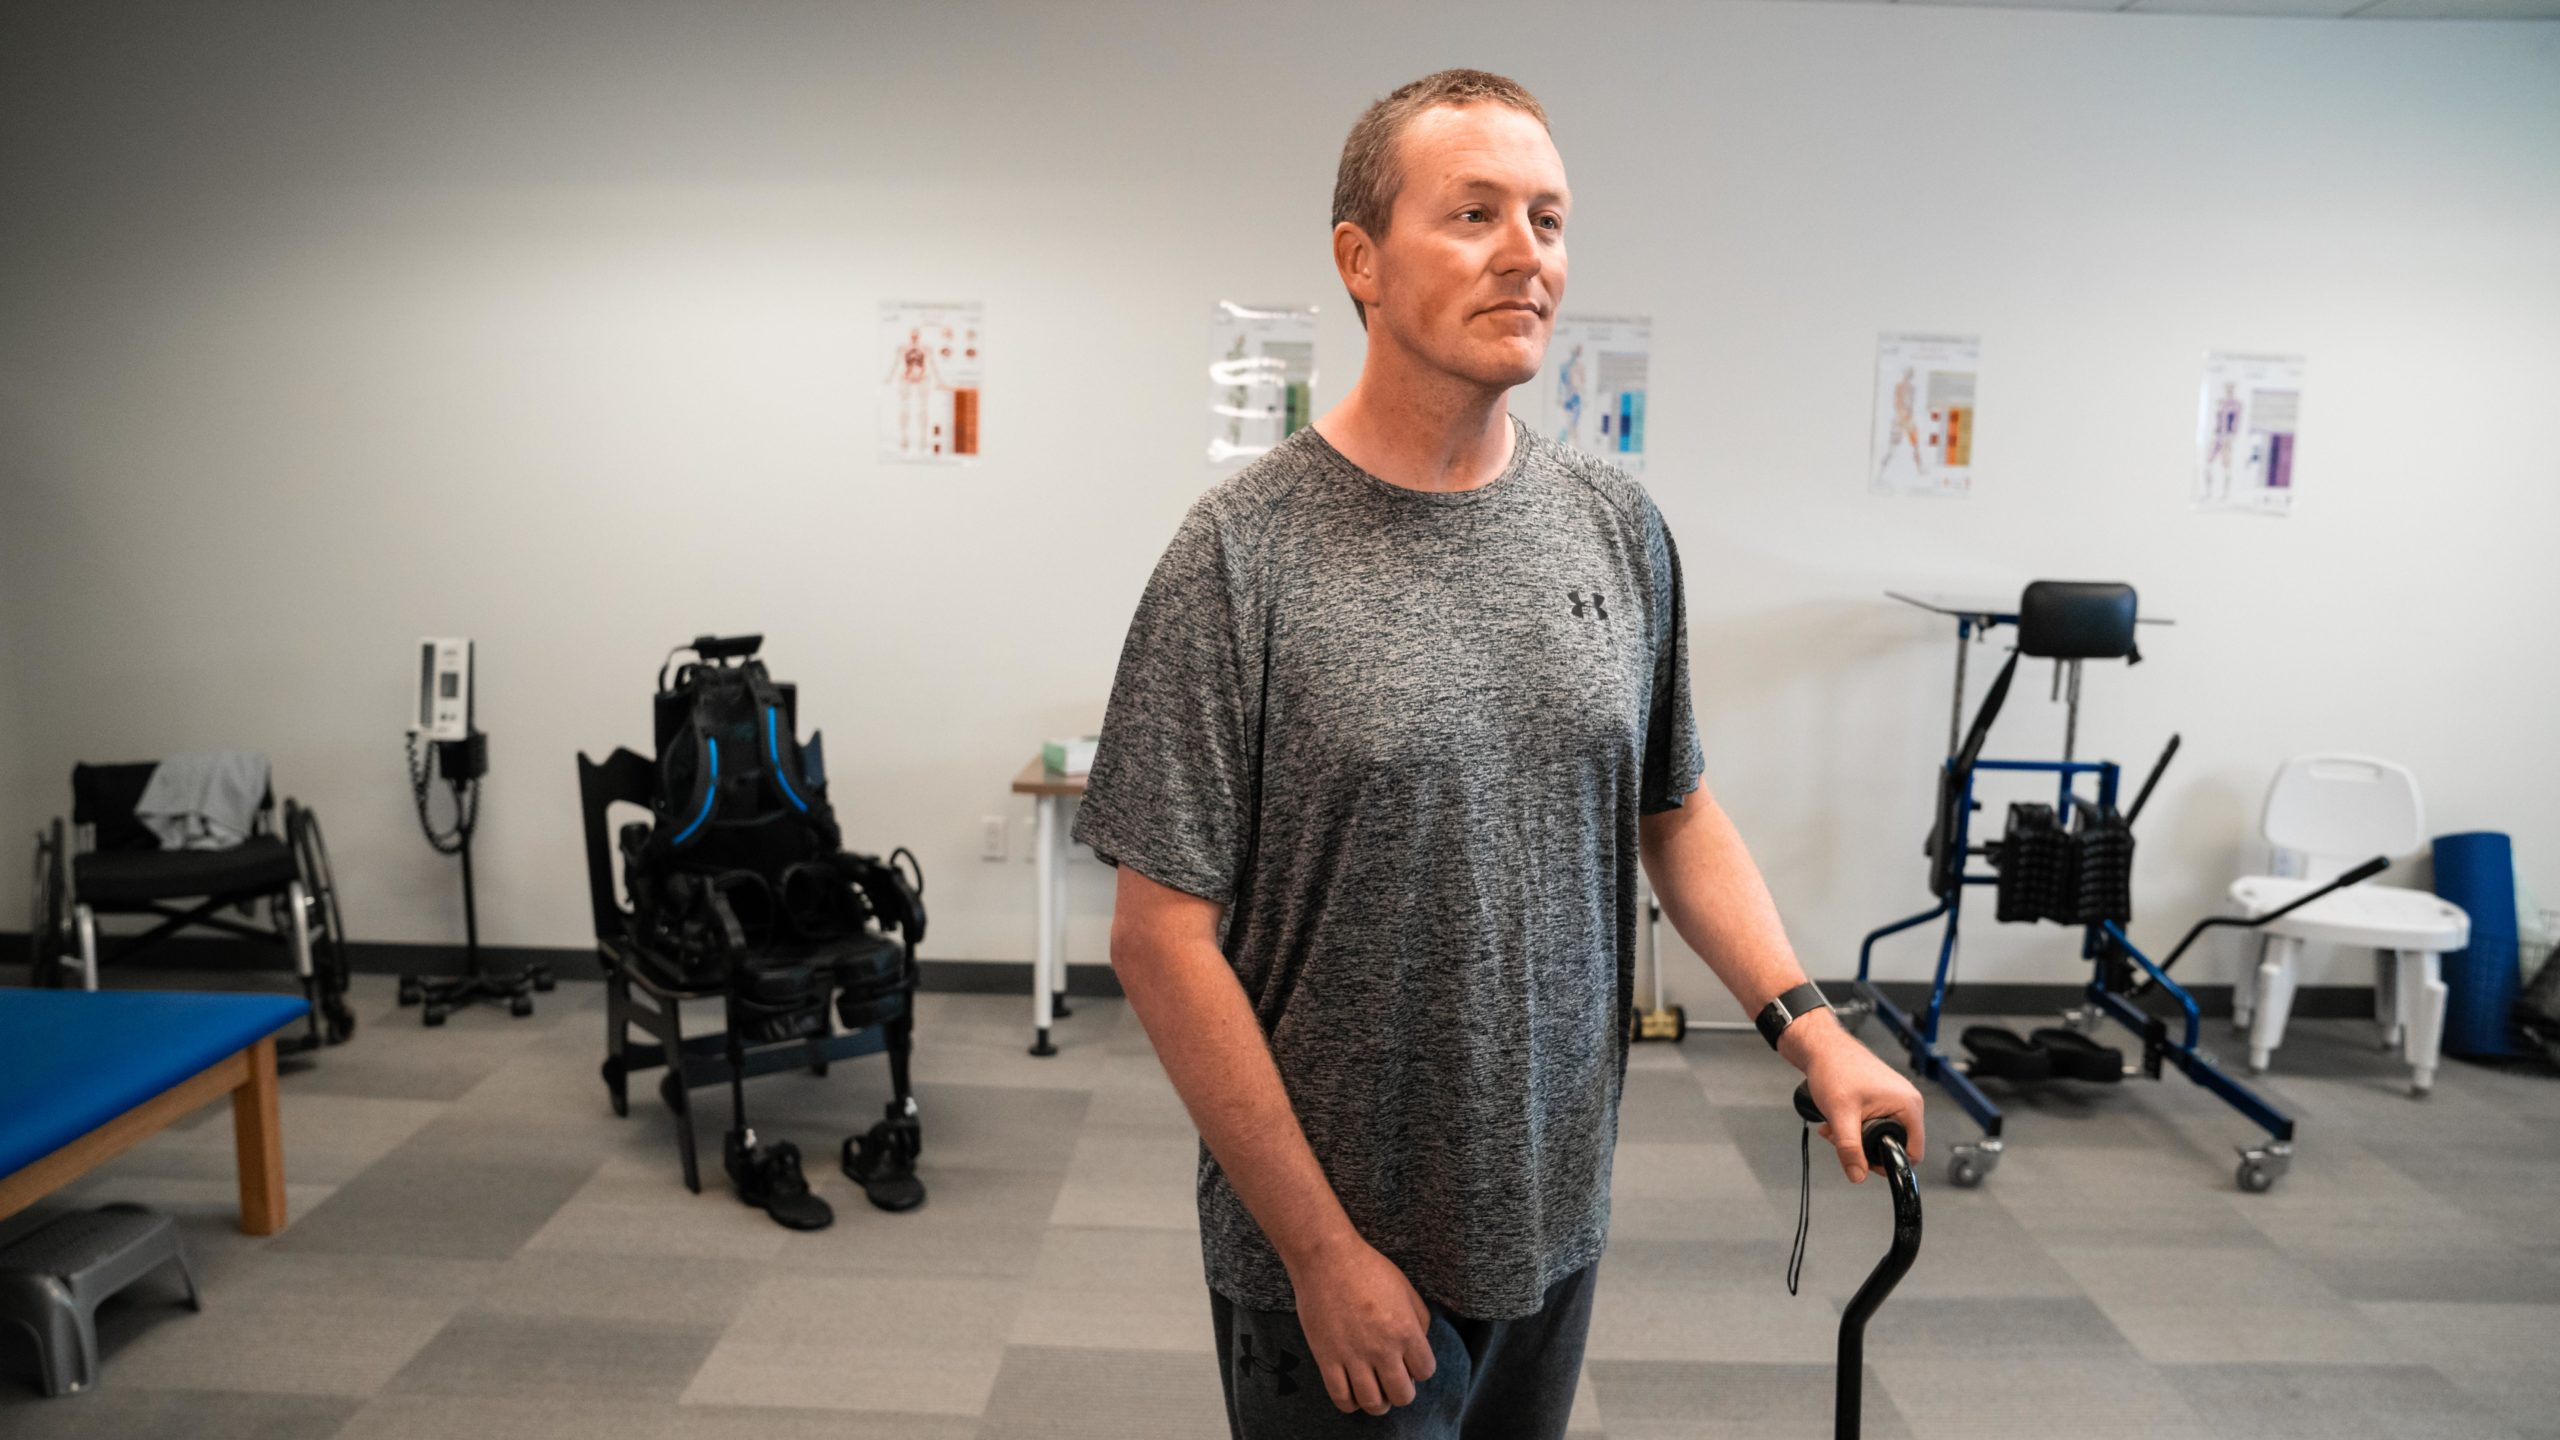 Man standing with a walking cane, in the background there is an Ekso Bionics exoskeleton suit sitting in a wheelchair.